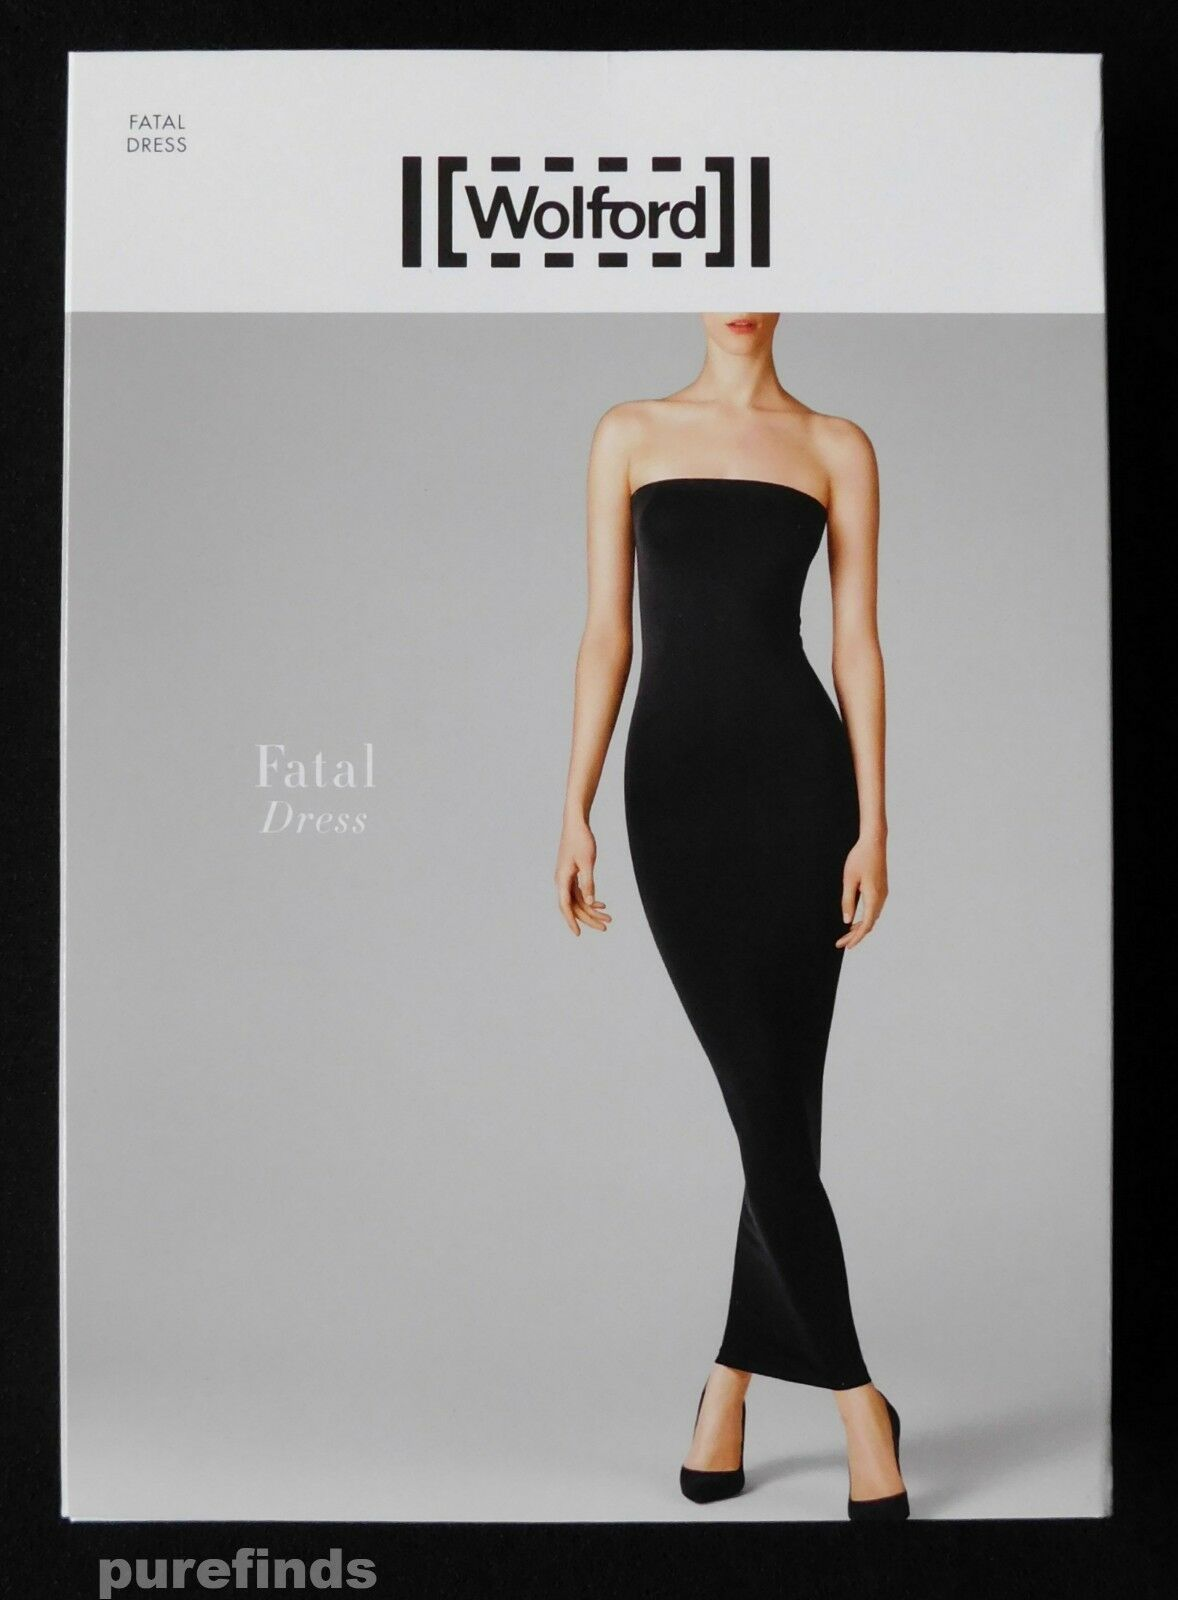 WOLFORD FATAL DRESS 50706, TURQOISE blueE, SIZE SMALL, USA 8 New in box